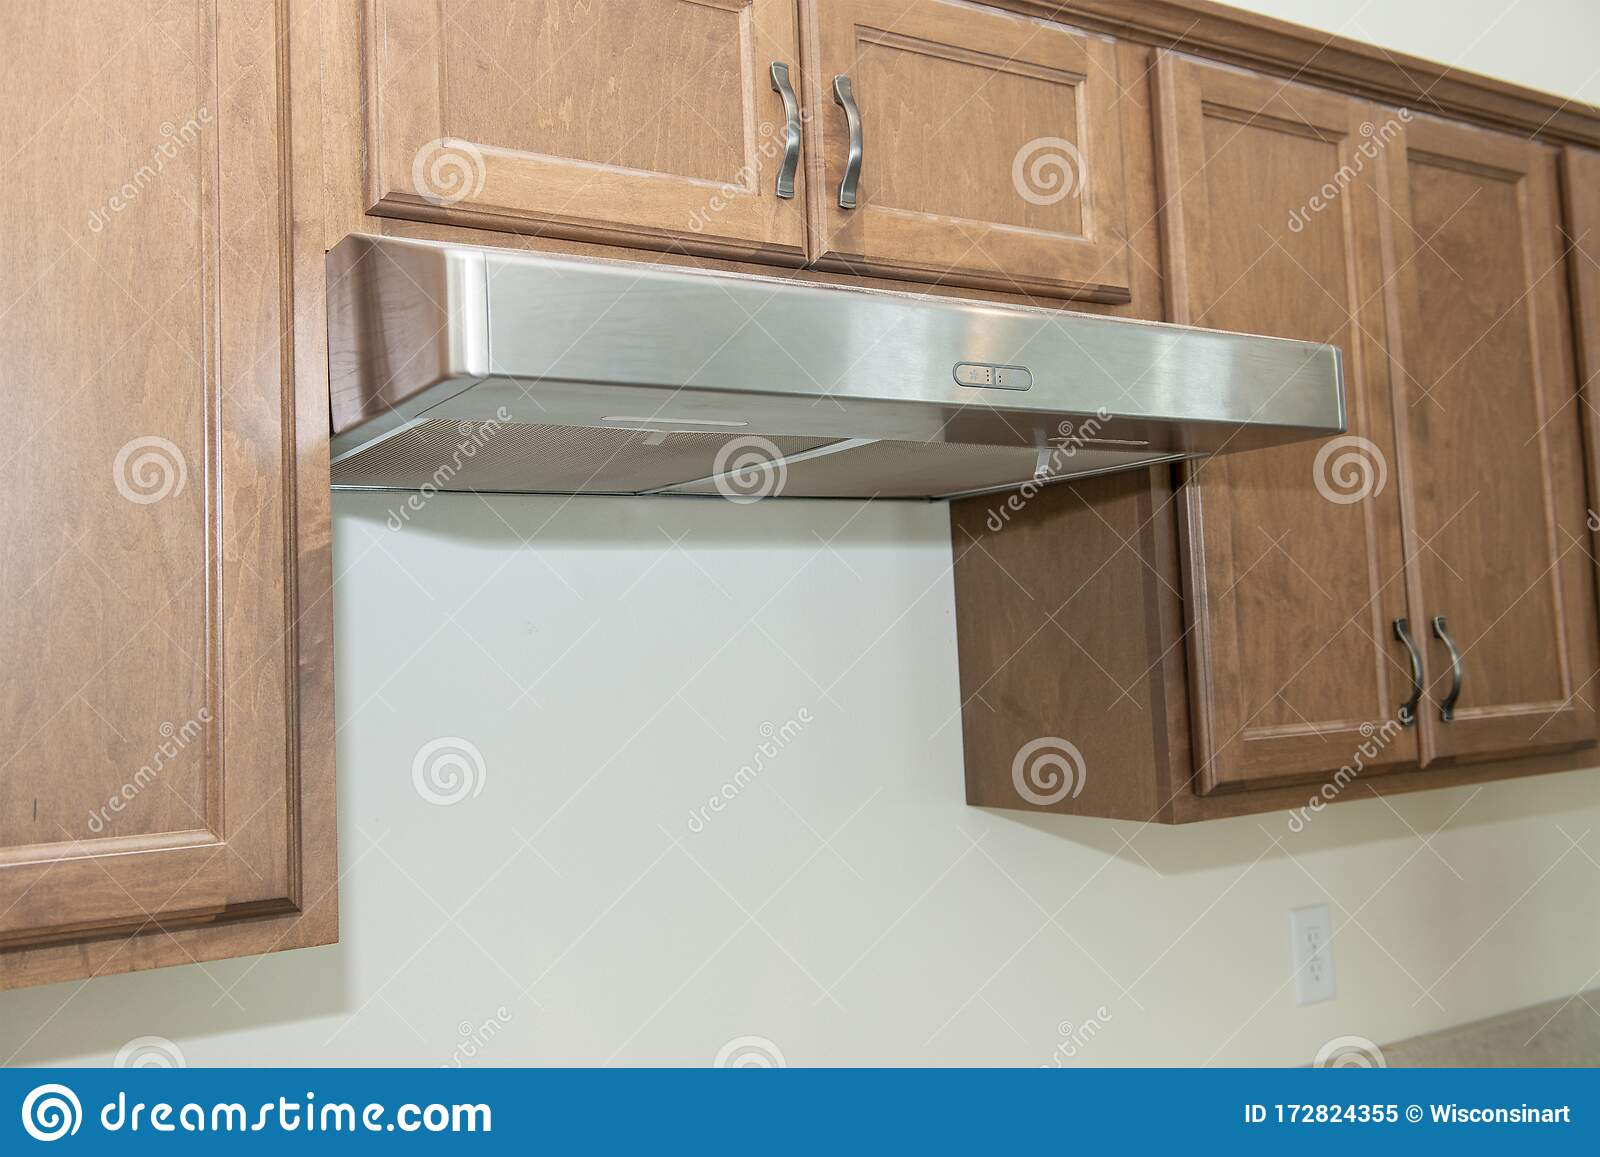 Gas Stove Exhaust Fan Kitchen Construction Stock Image Image Of Exhaust House 172824355